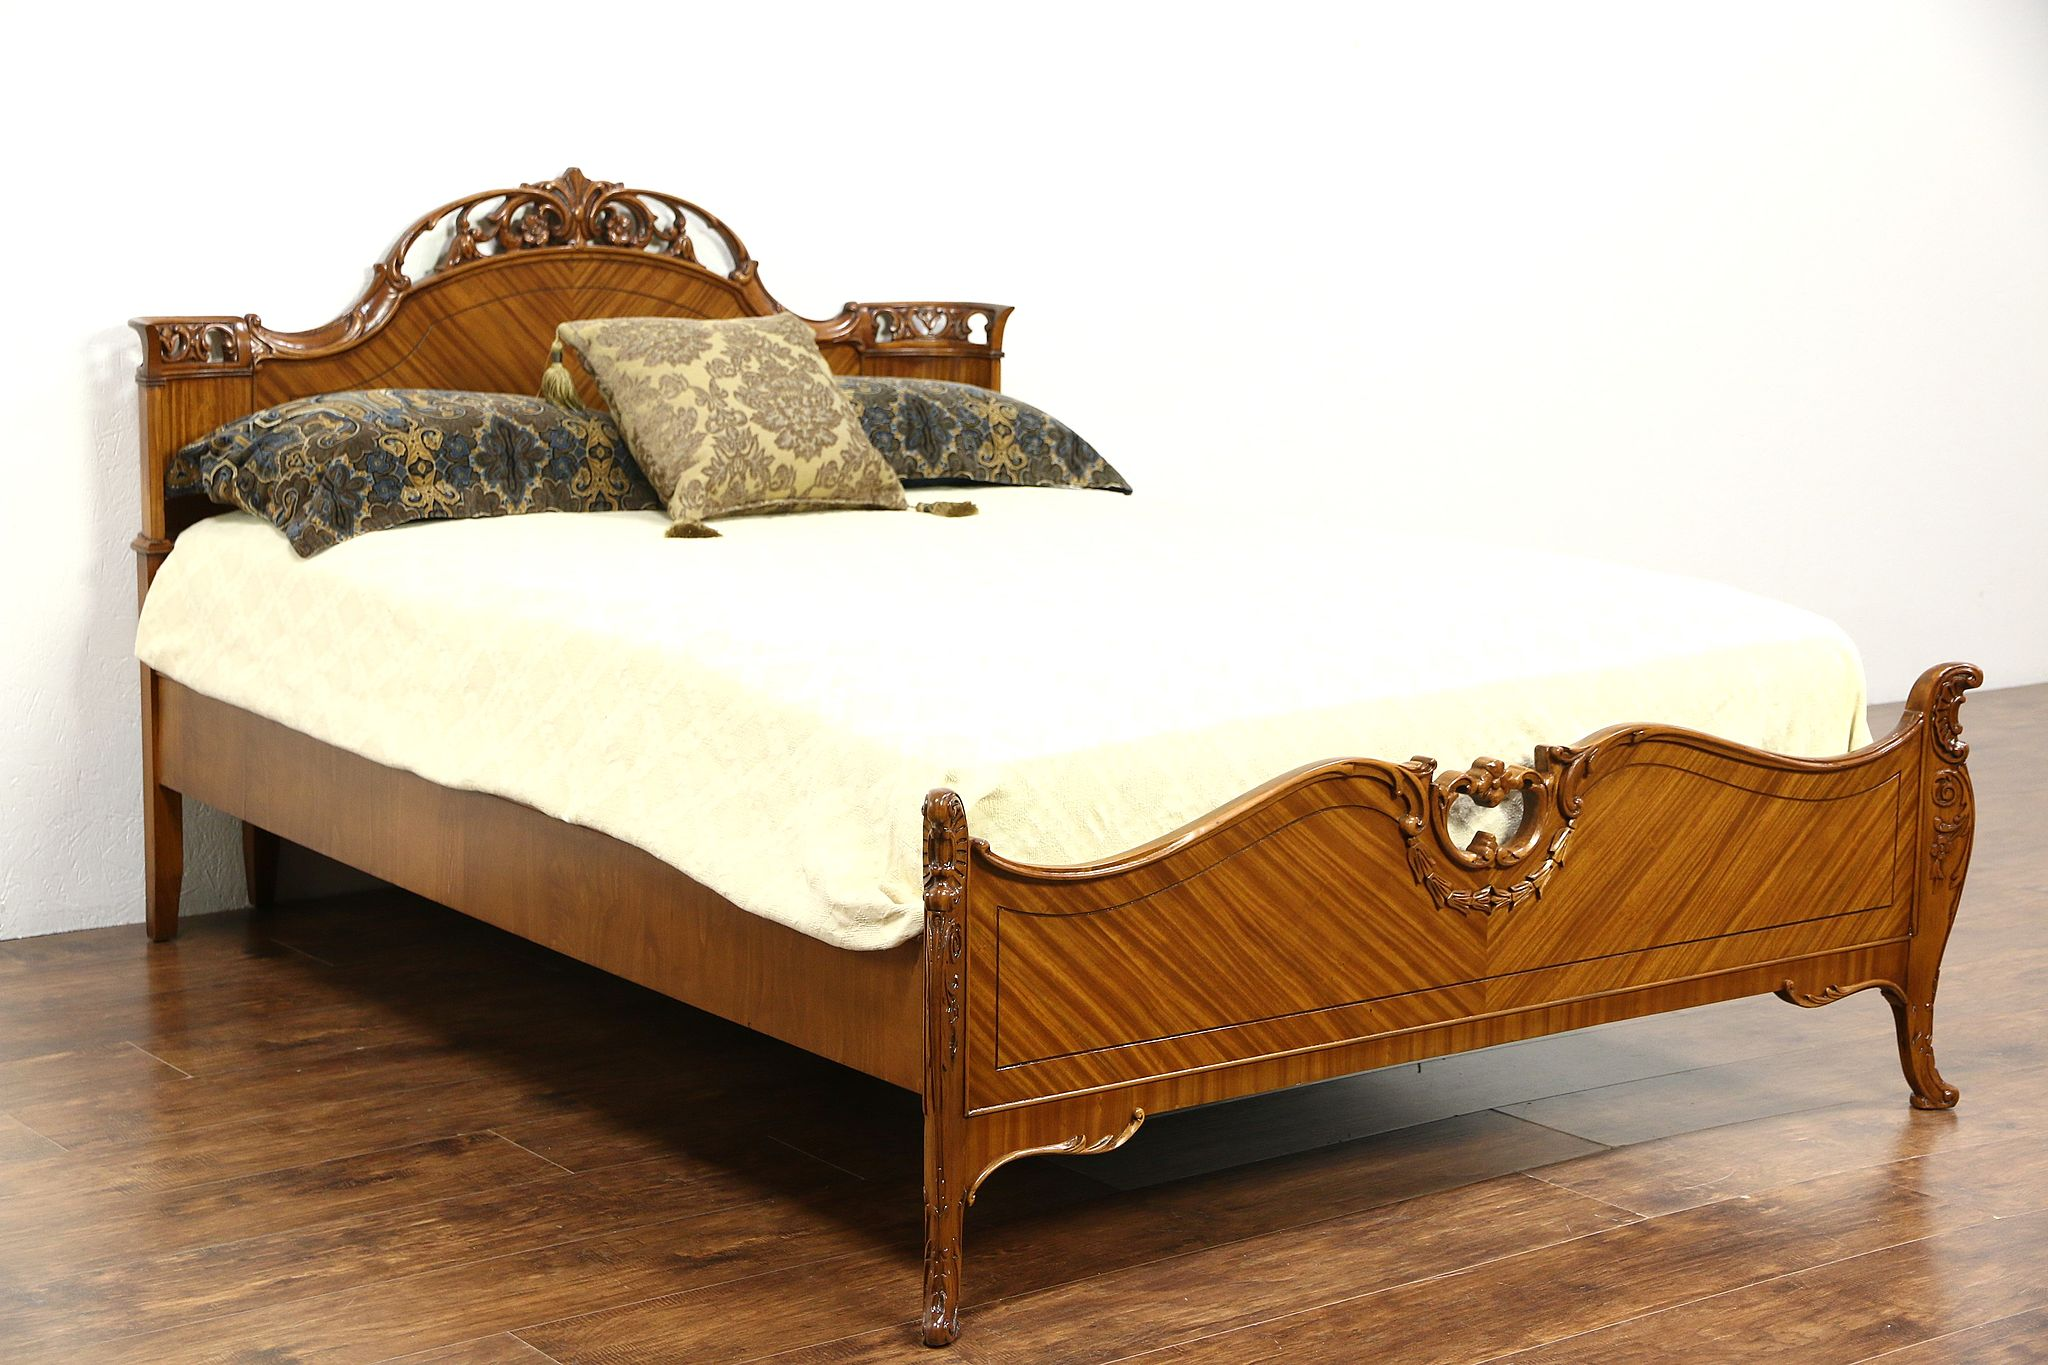 Beds Independent Antique/vintage Carved French Oak Double Bed